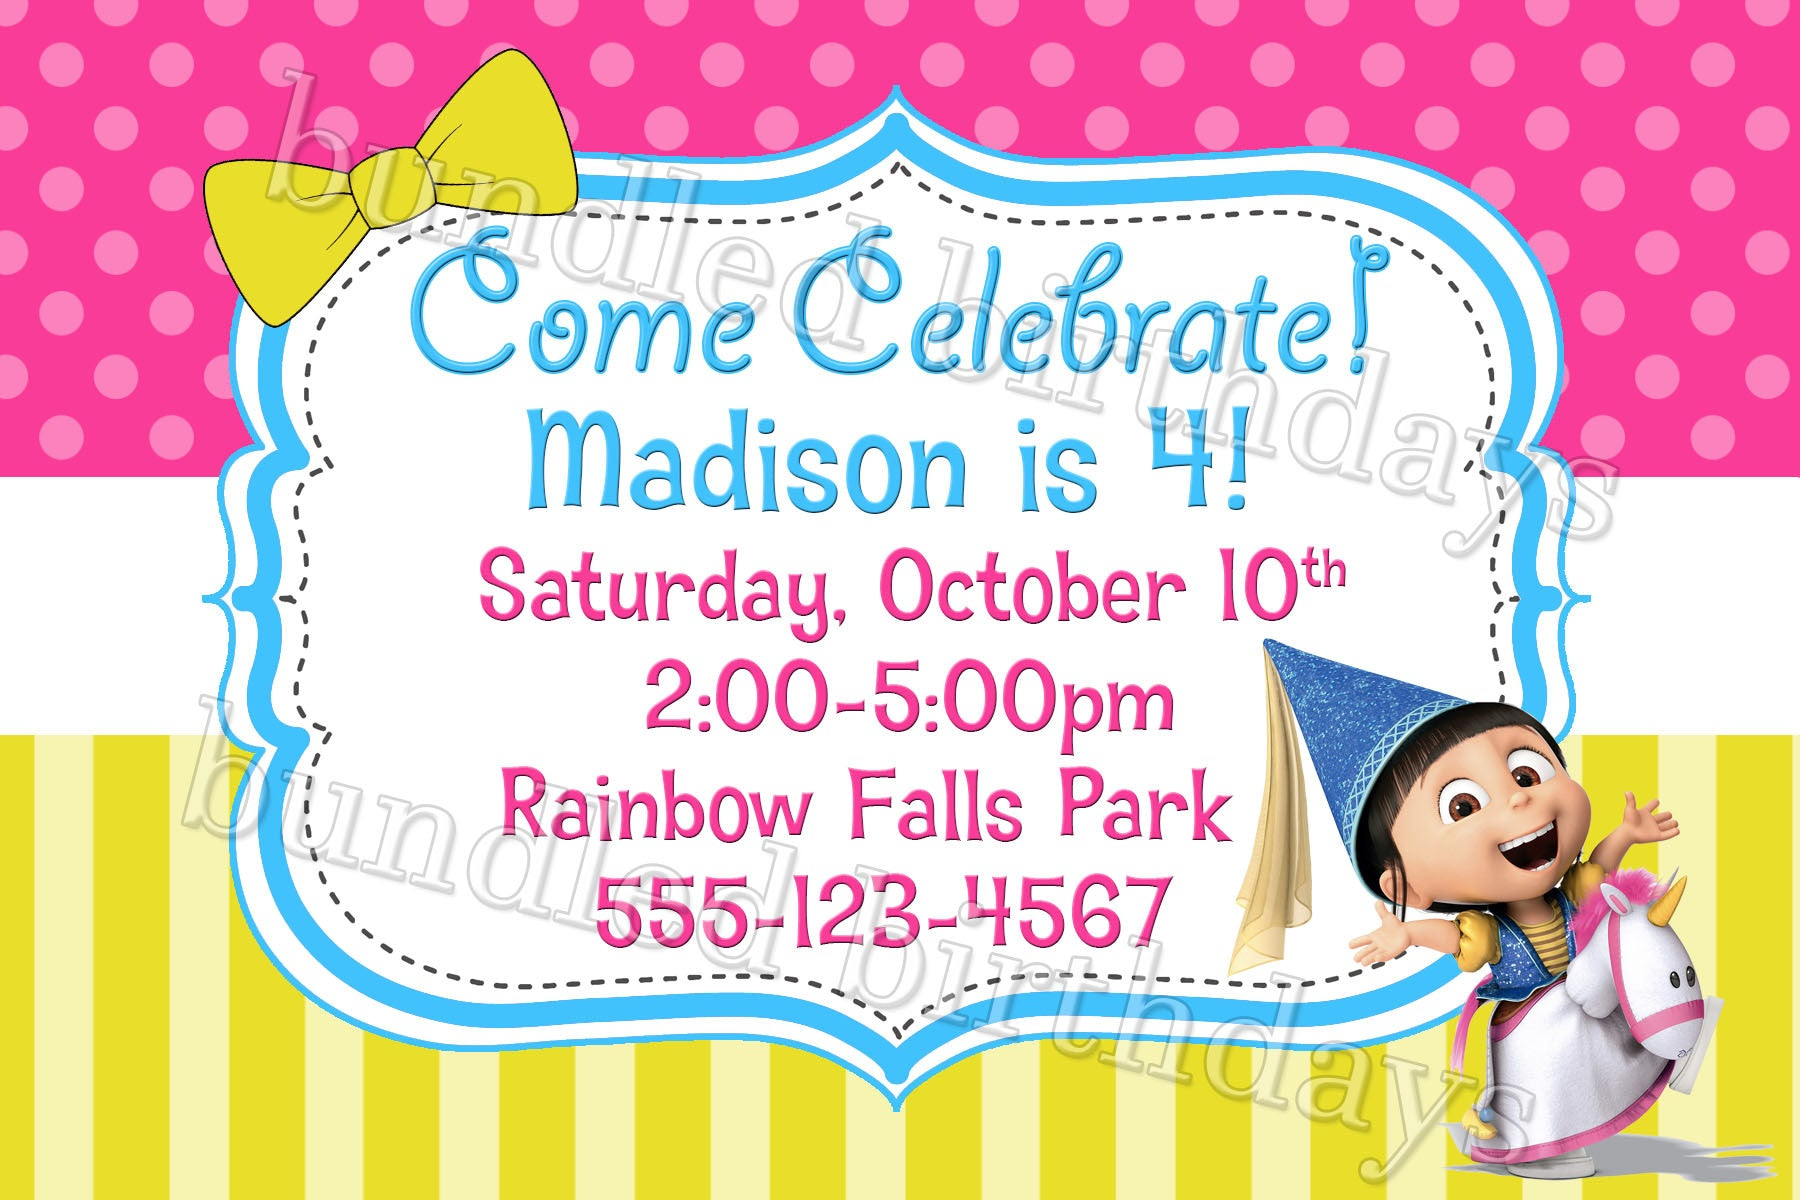 Dispicable Me Agnes Birthday Invitation Digital Download Twistin - Birthday invitation images download